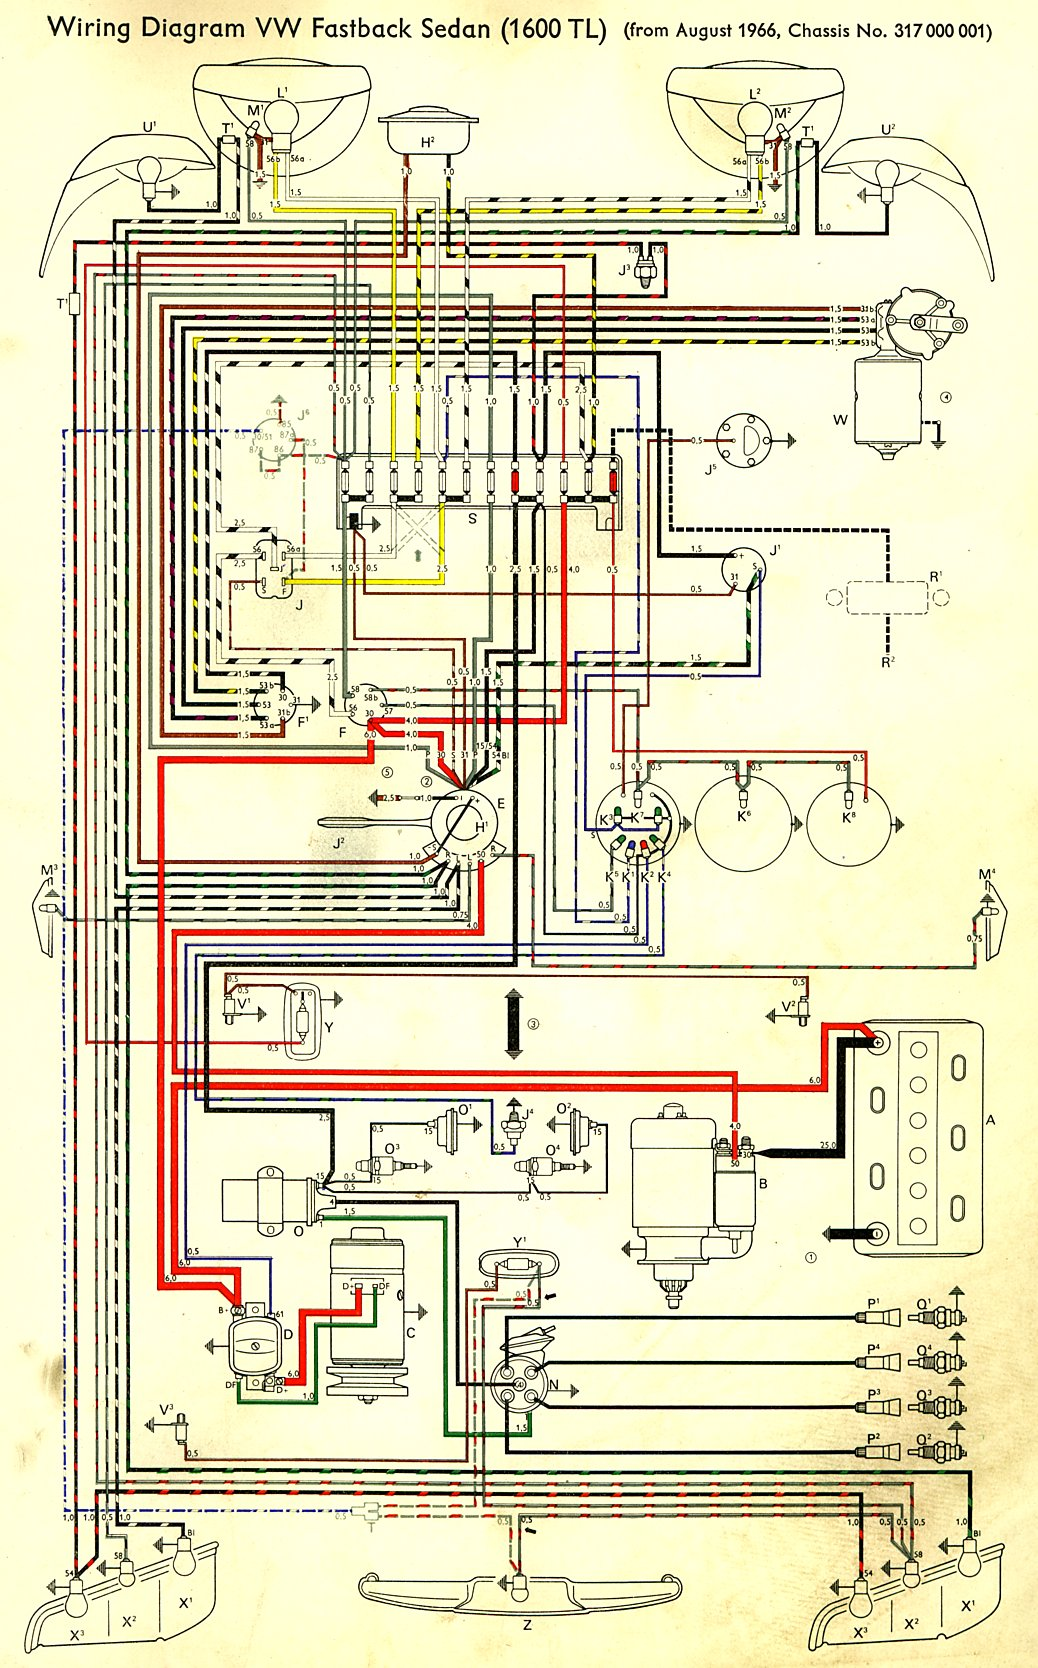 type3_1600TL_67 thesamba com type 3 wiring diagrams different types of electrical wiring diagrams at webbmarketing.co